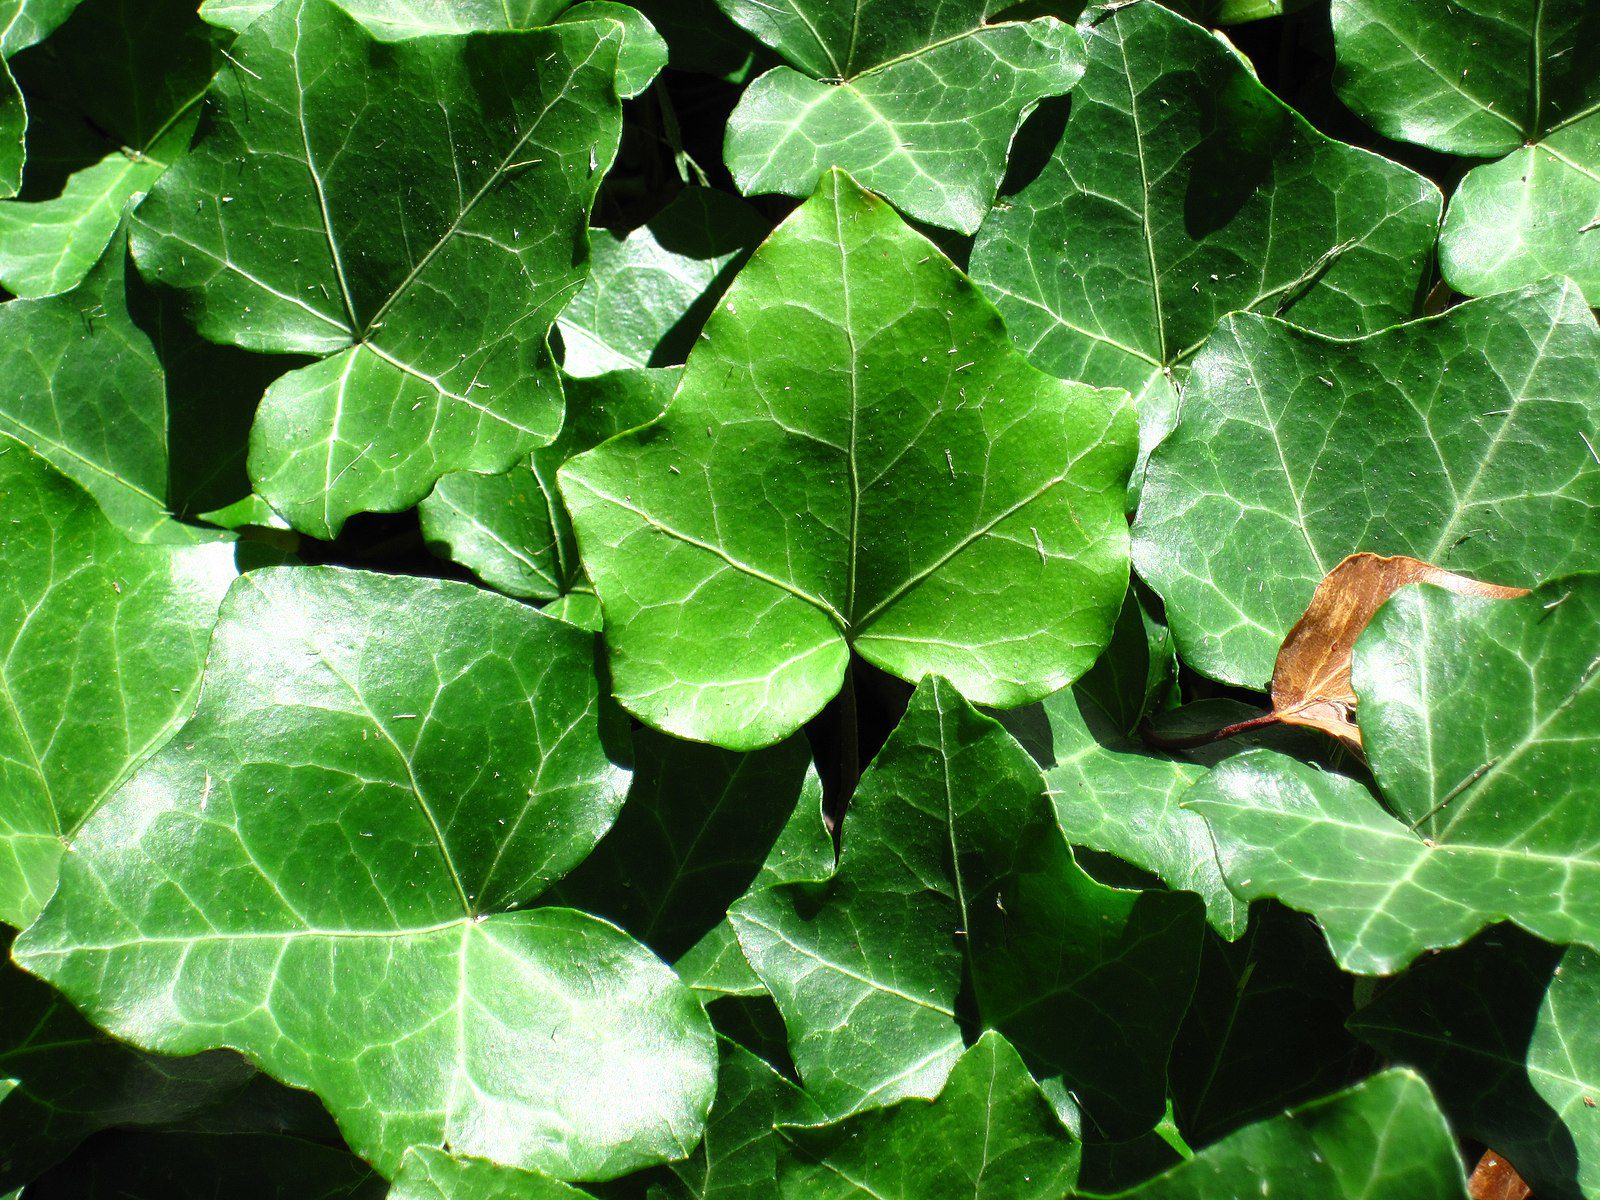 Eco-Answers from the Pros: Removing English Ivy